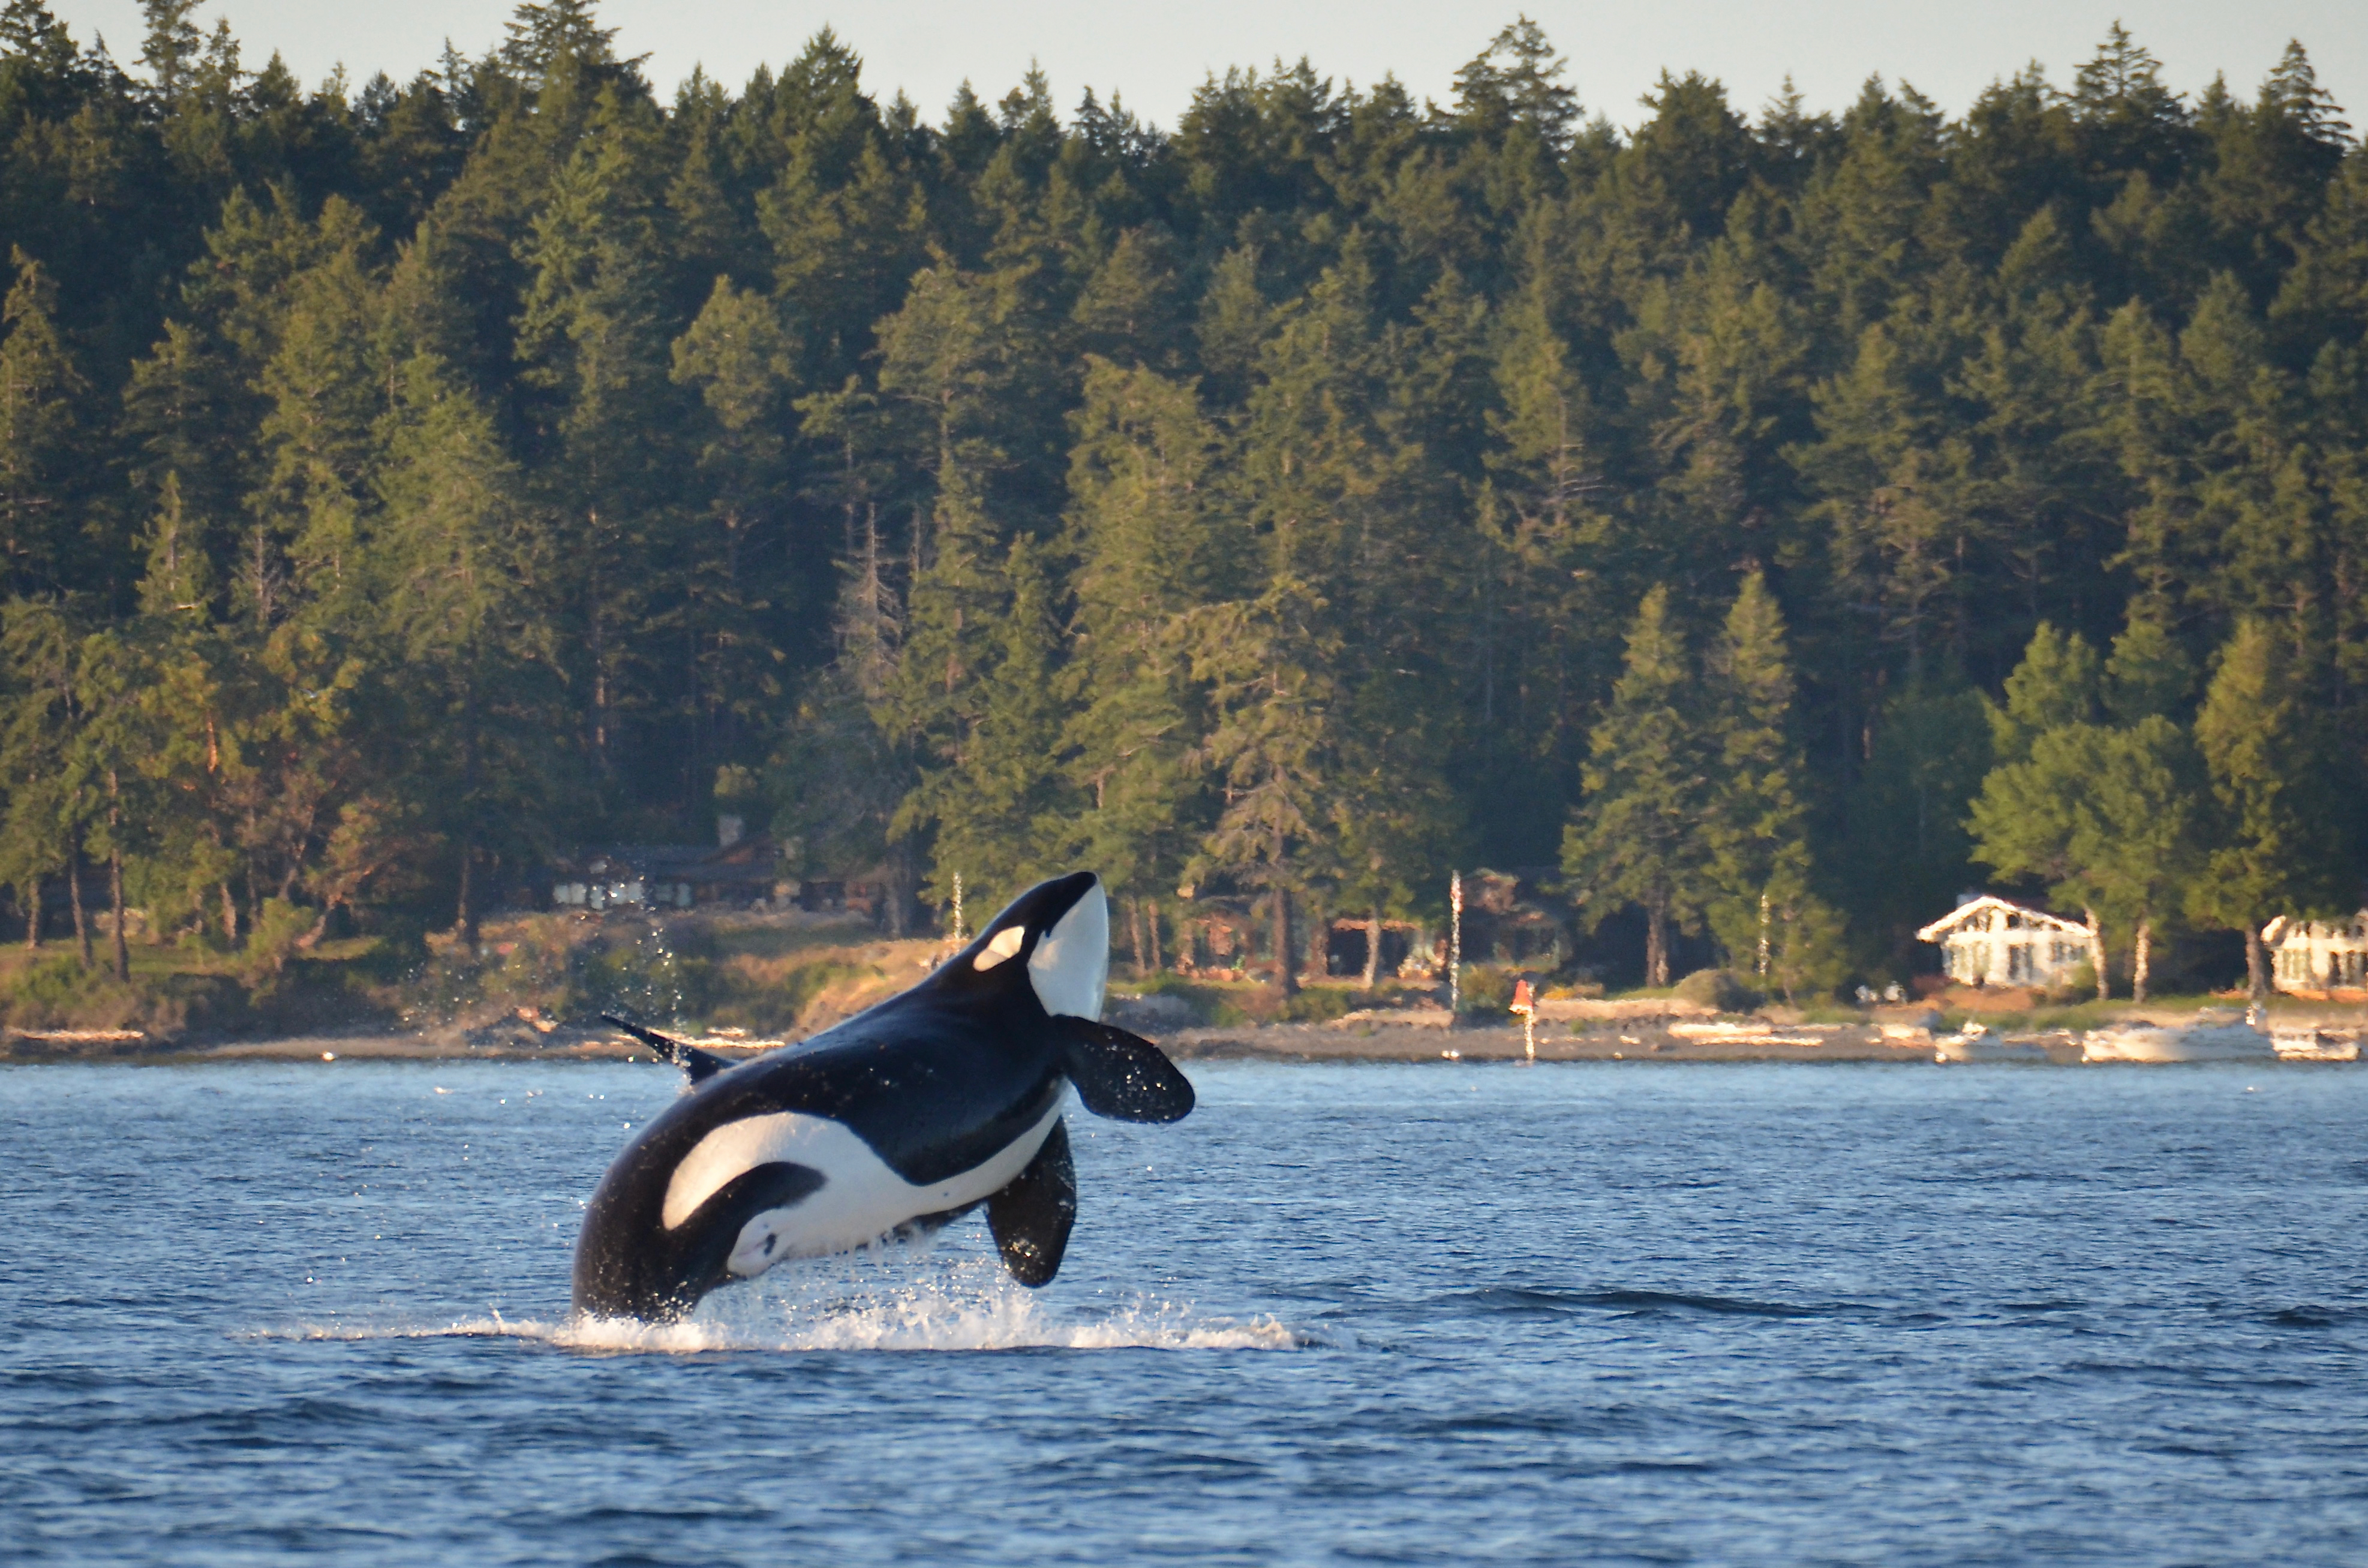 A black-and-white sea mammal (an orca) emerges from blue water. In the background, there's hilly land covered in evergreen trees with some residences along the shore.